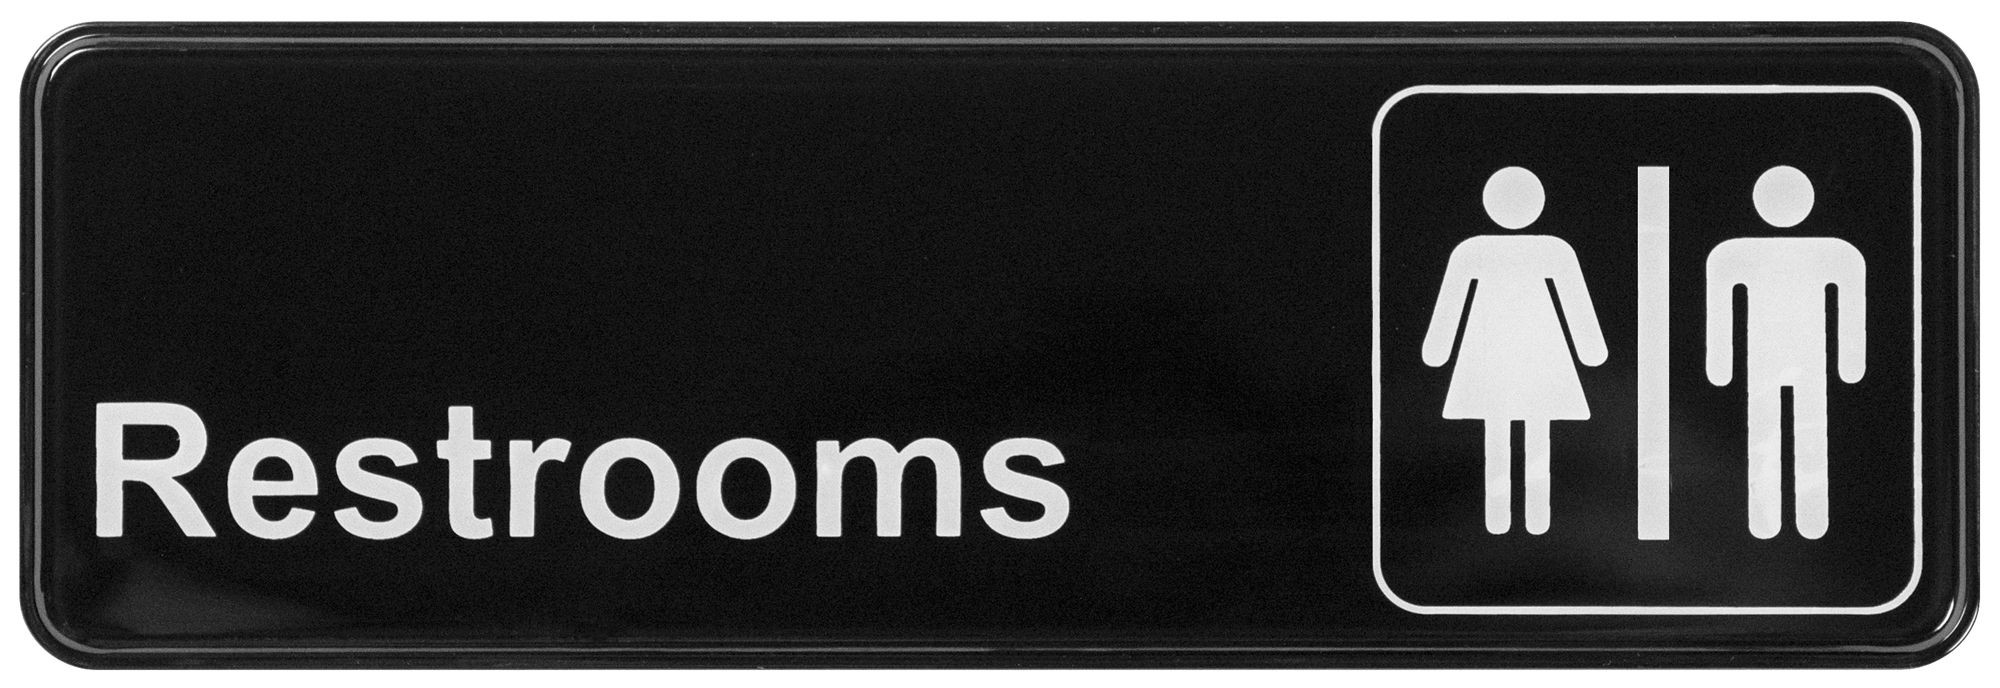 """Winco SGN-313 """"Restrooms"""" Informational Sign, 9"""" x 3"""""""